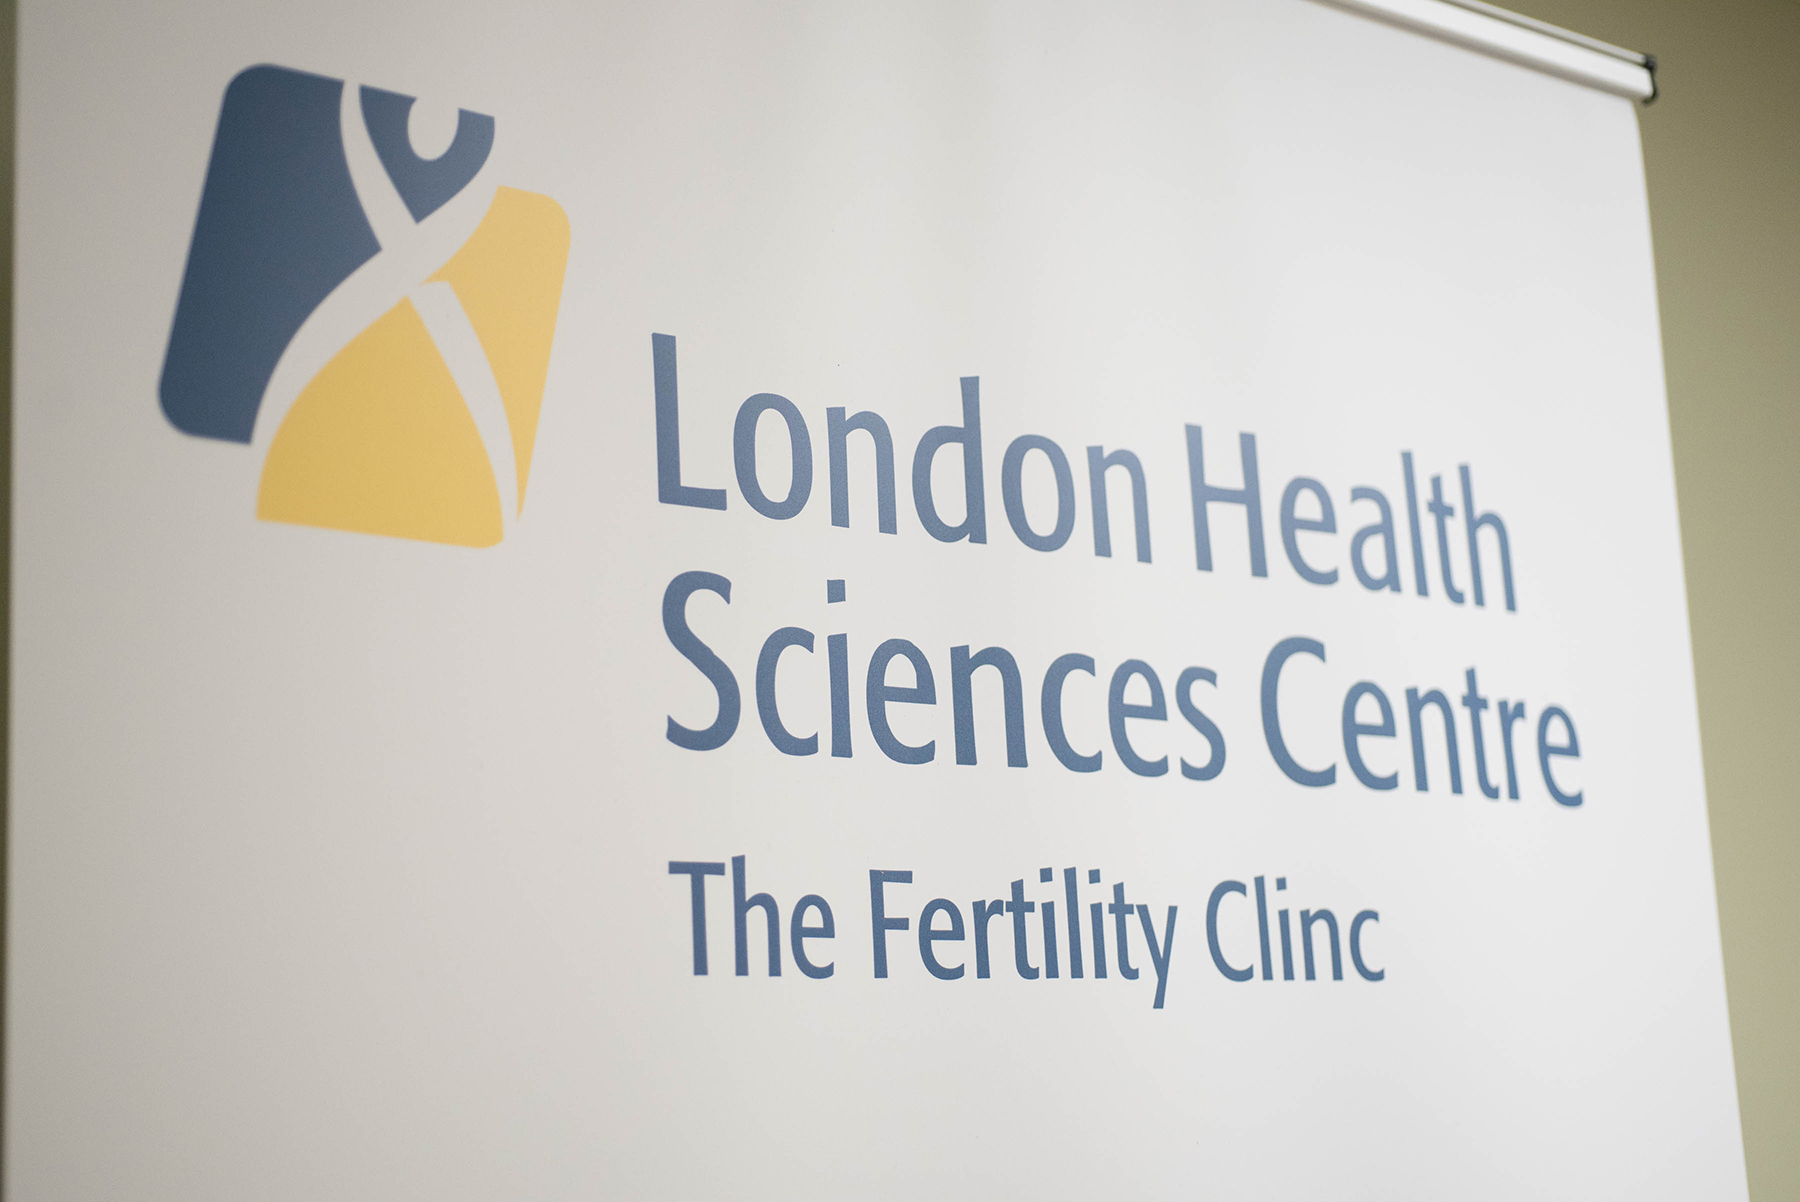 Fertility Clinic - About Us